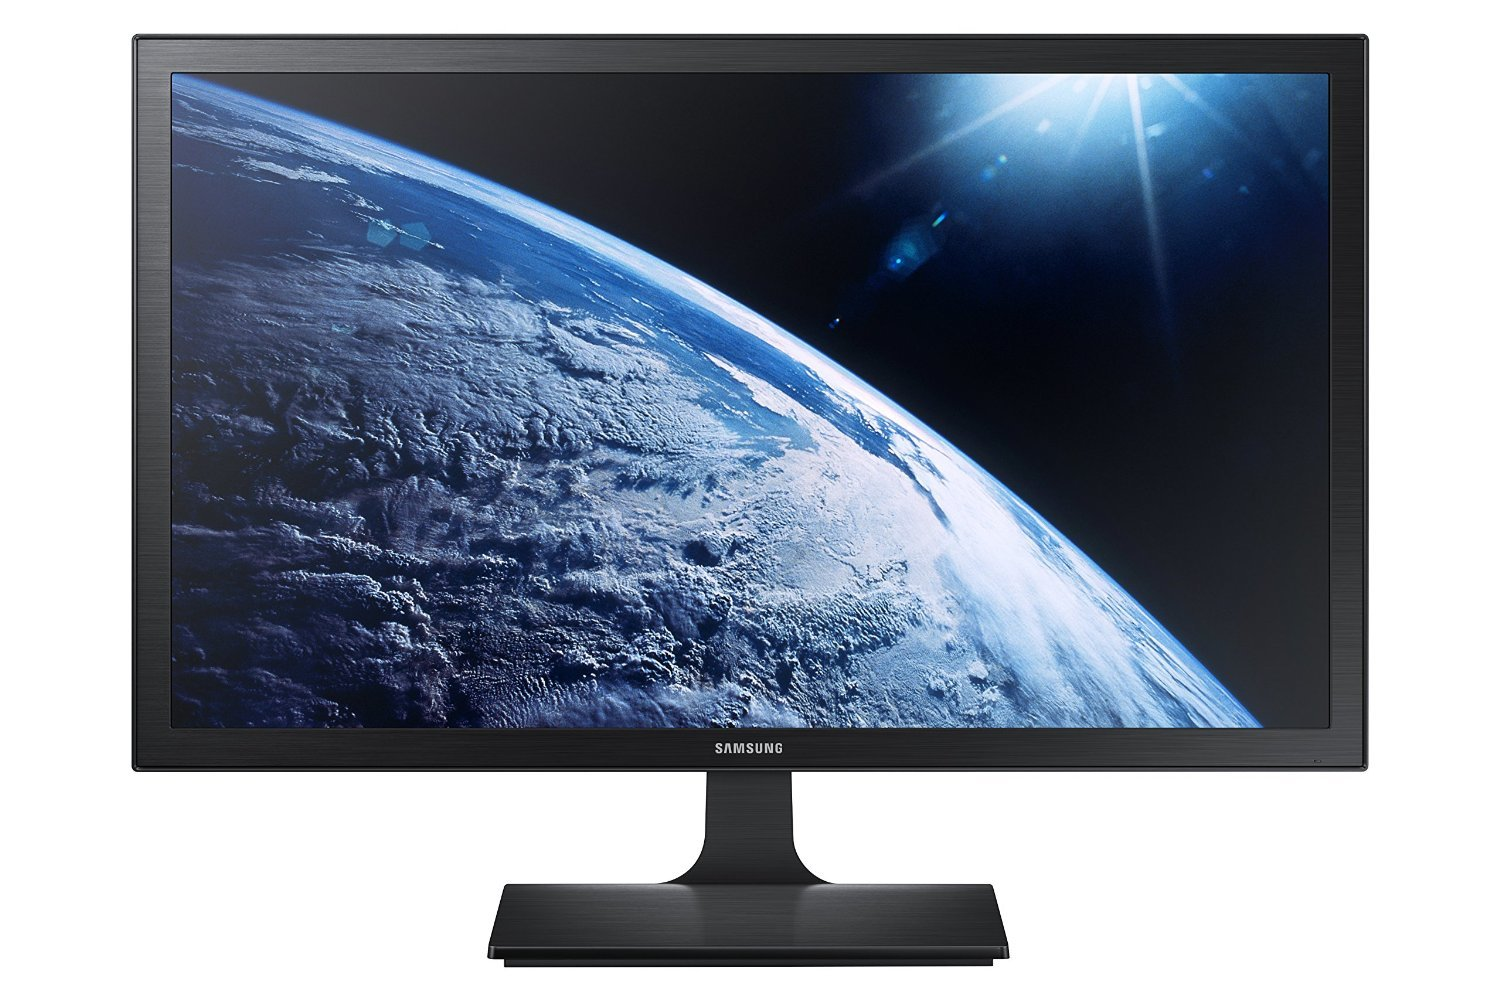 High Performance Samsung 27 Full HD 1920 x 1080 Backlit-LED Gaming Monitor, 16 9 Aspect Ratio, 1ms Response Time, HDMI and VGA Inputs, Black